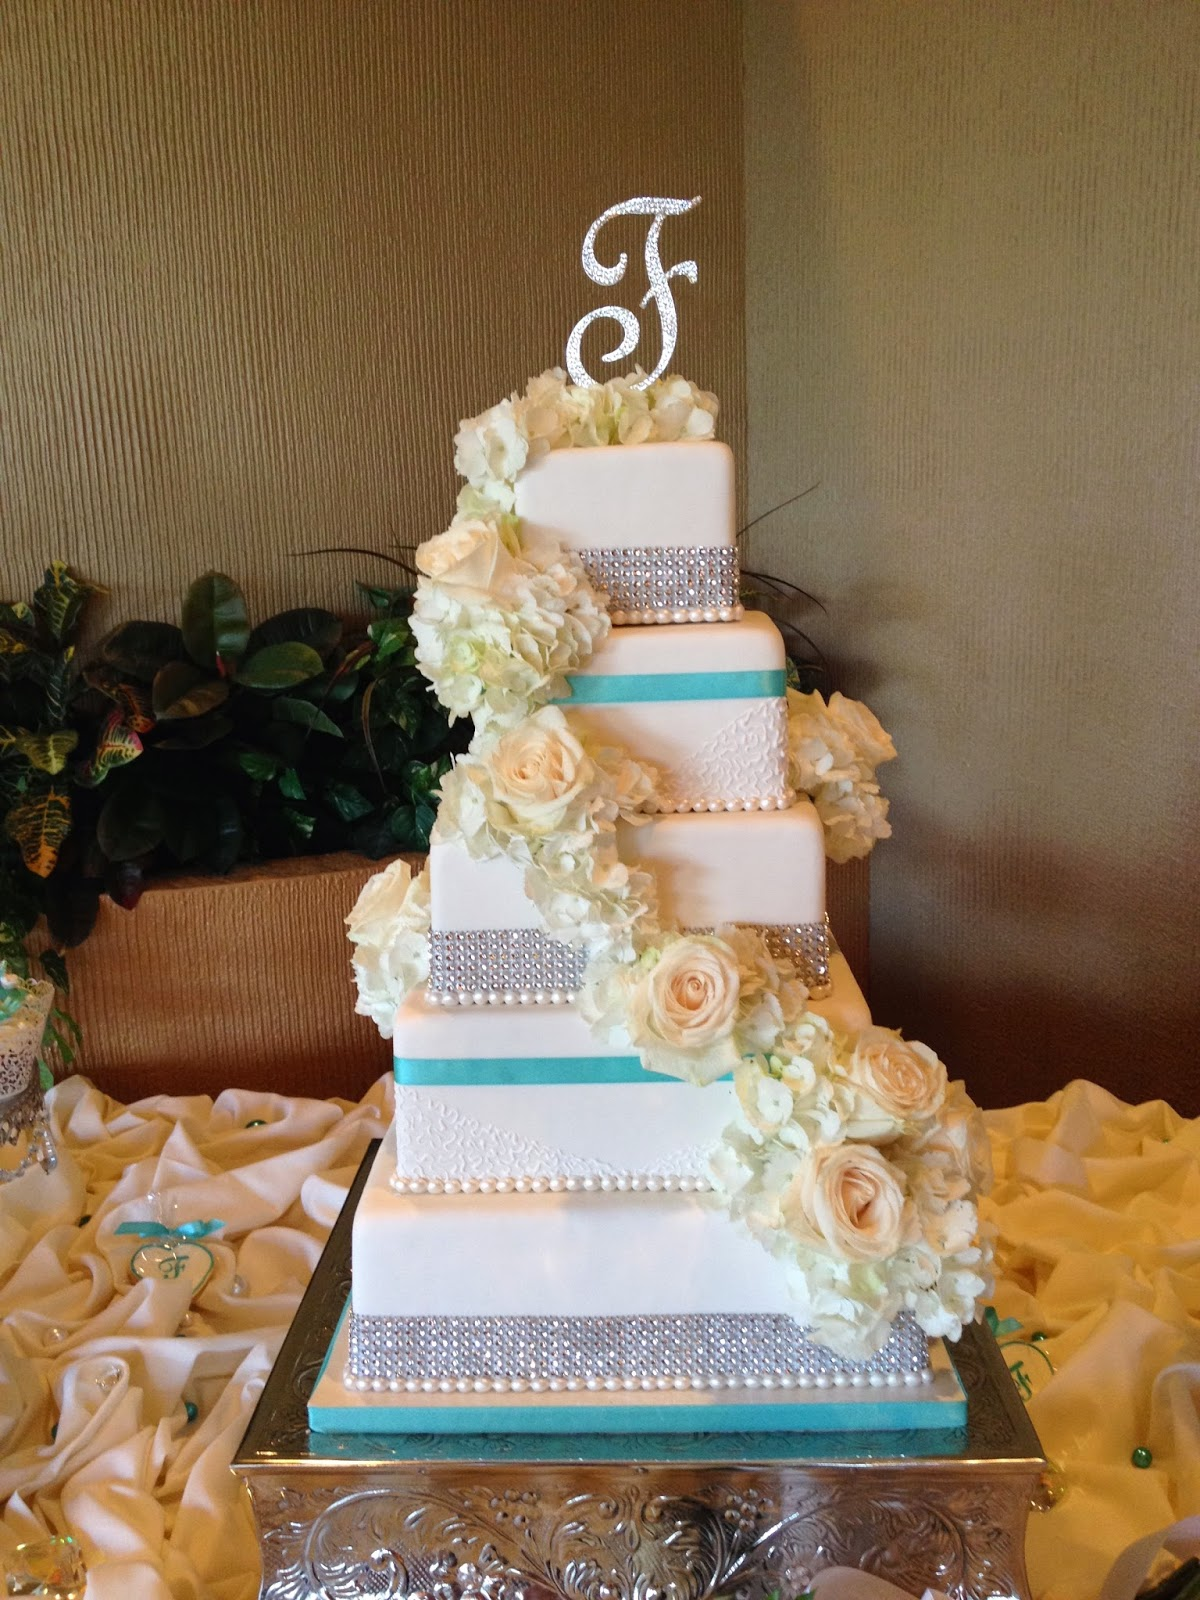 Sugar Chef  TIFFANY BLUE   BLING WEDDING CAKE TIFFANY BLUE   BLING WEDDING CAKE